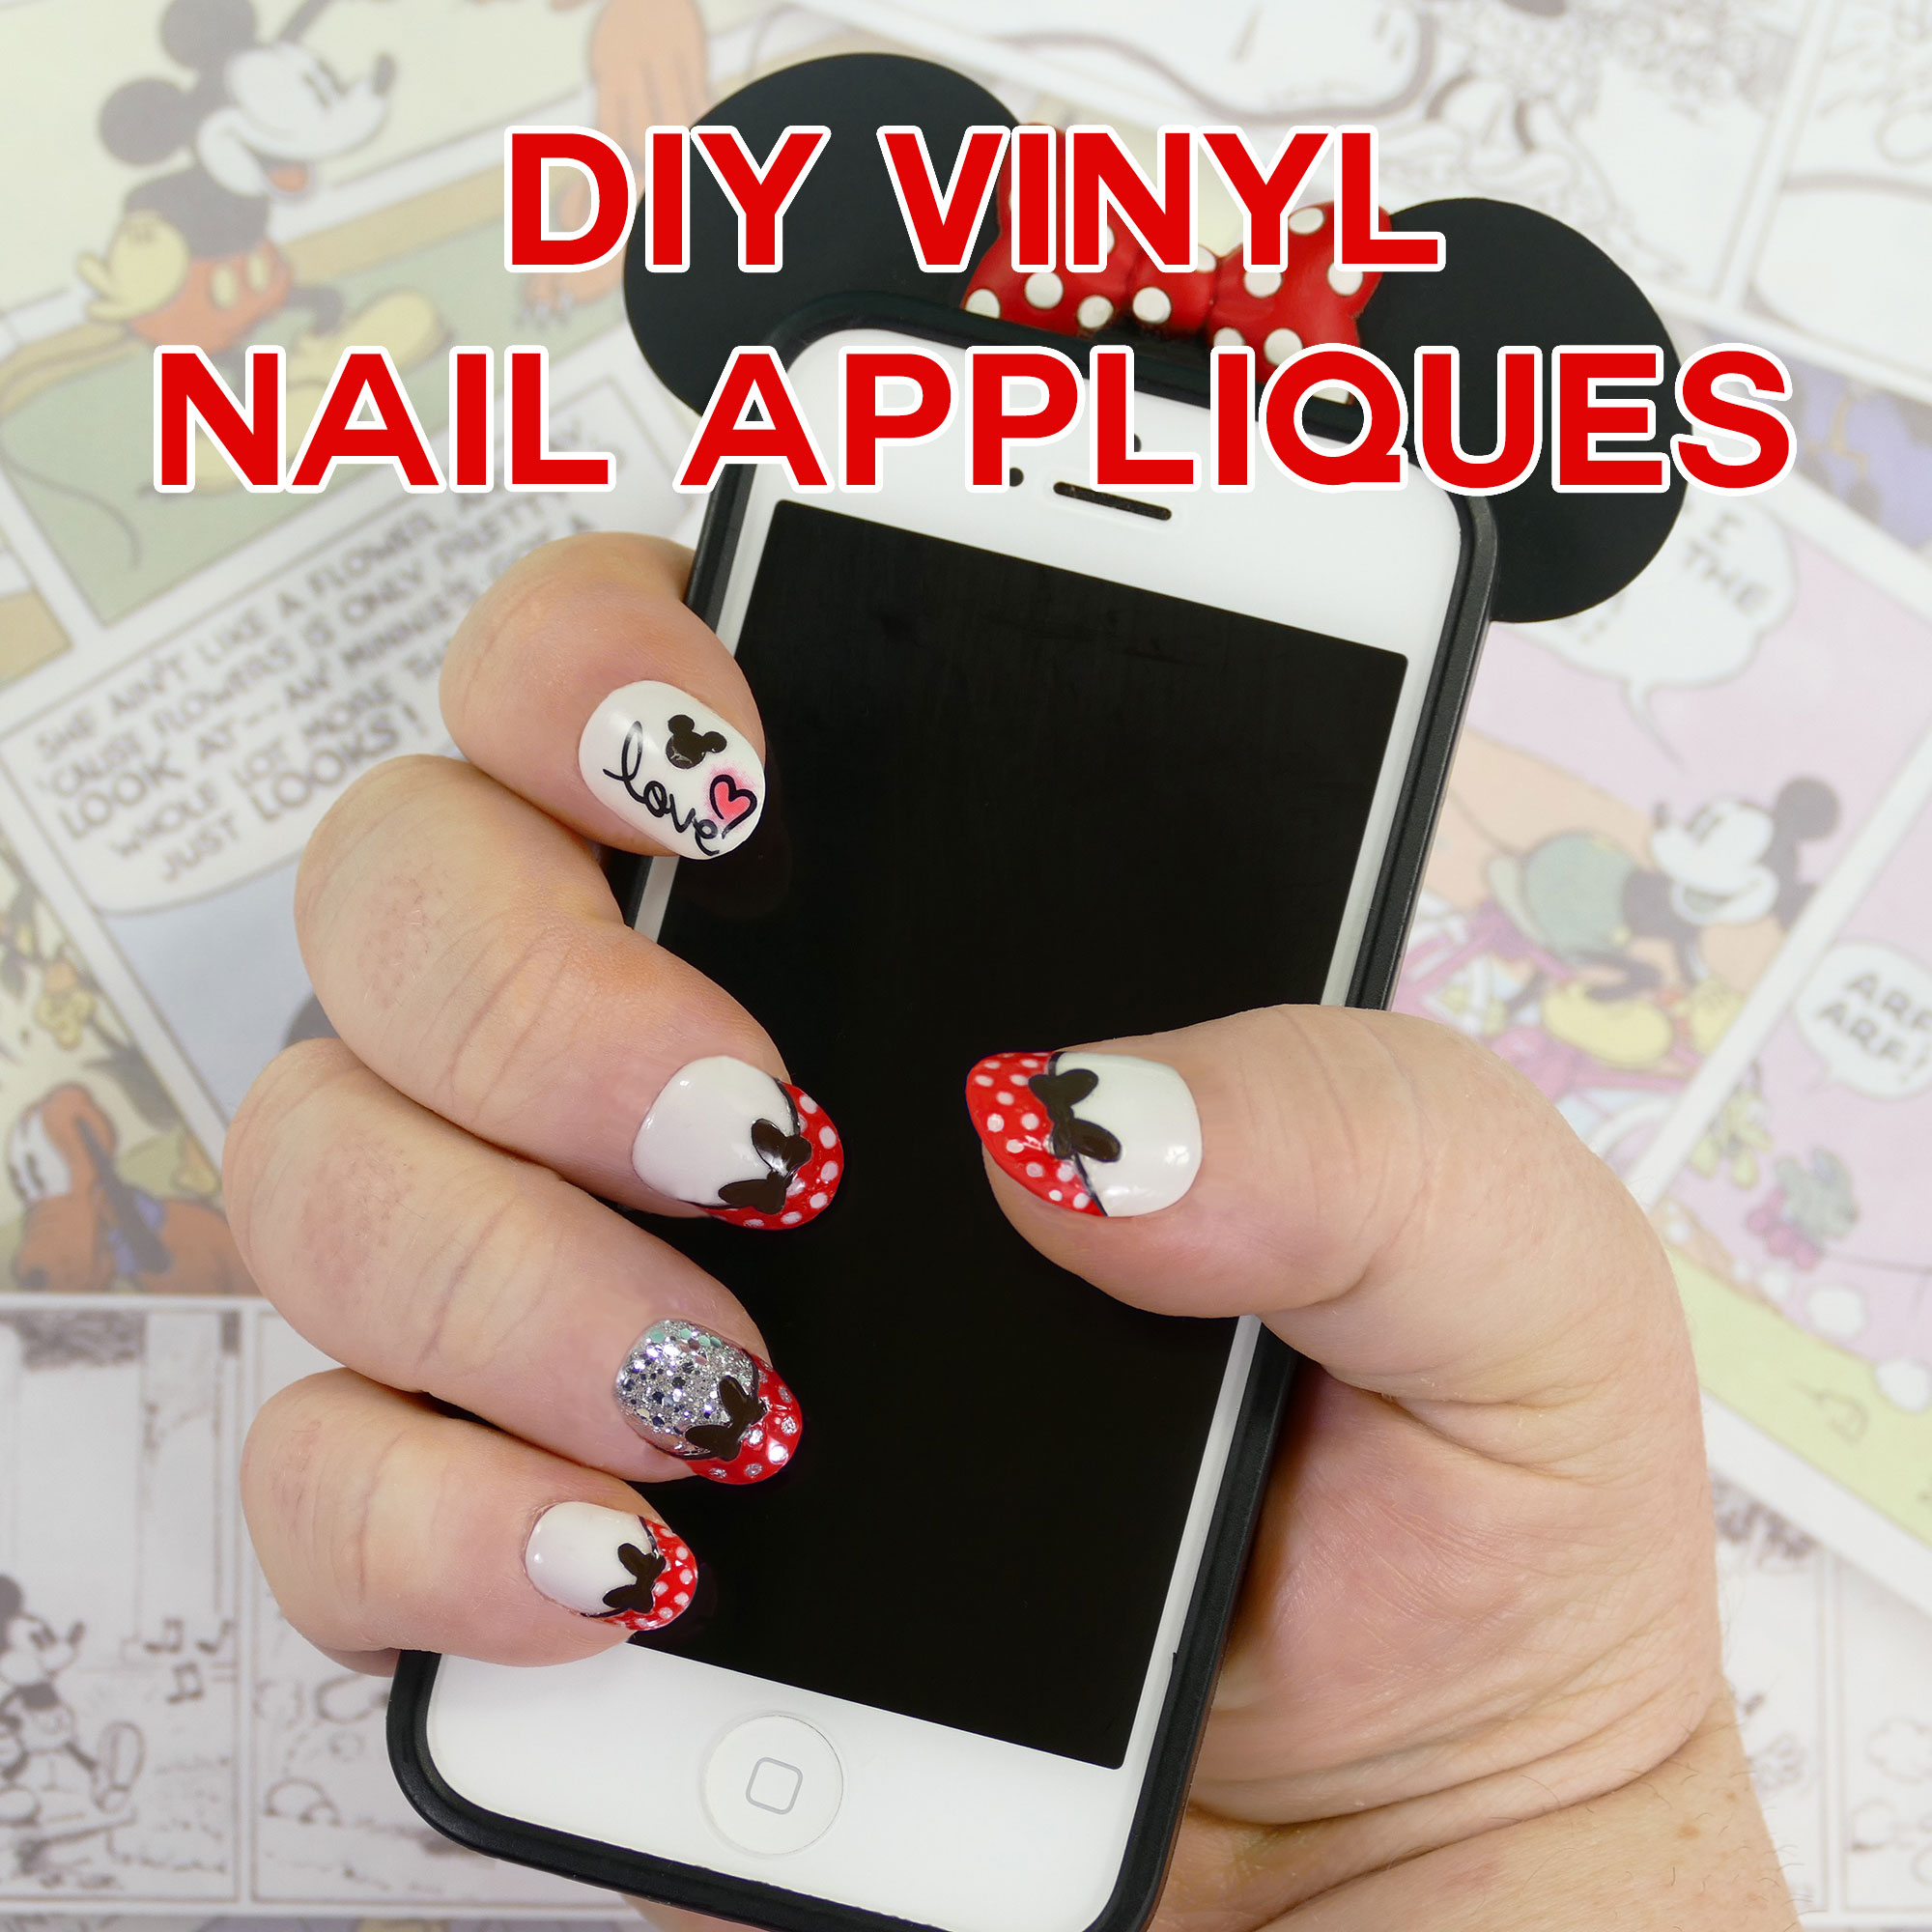 Diy Nail Desk Diy Minnie Mouse Nail Tips Vinyl Appliques Made On The